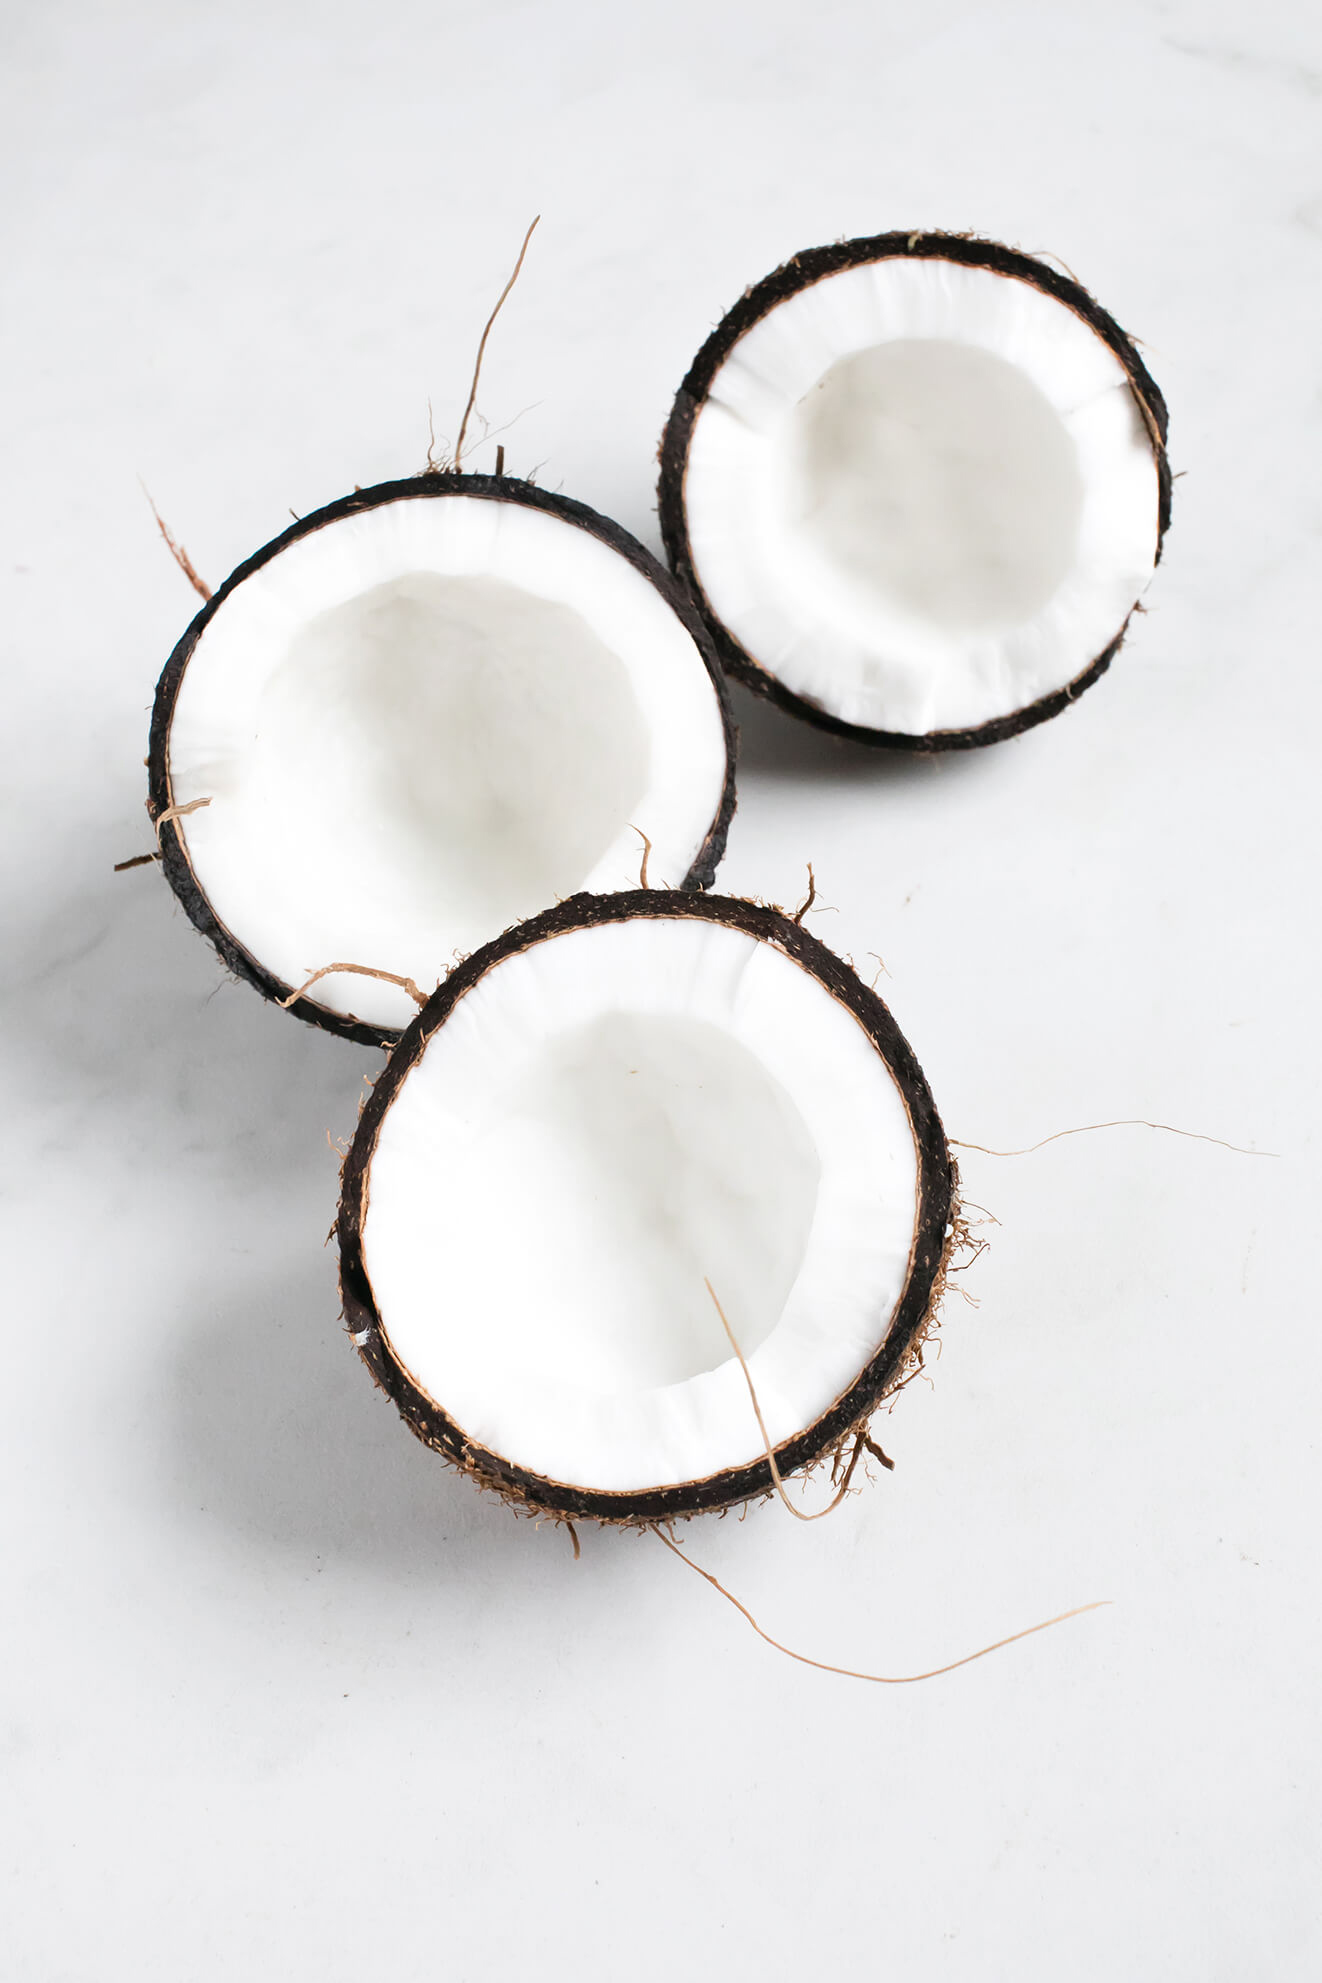 is coconut oil good for you or is it just marketing hype?